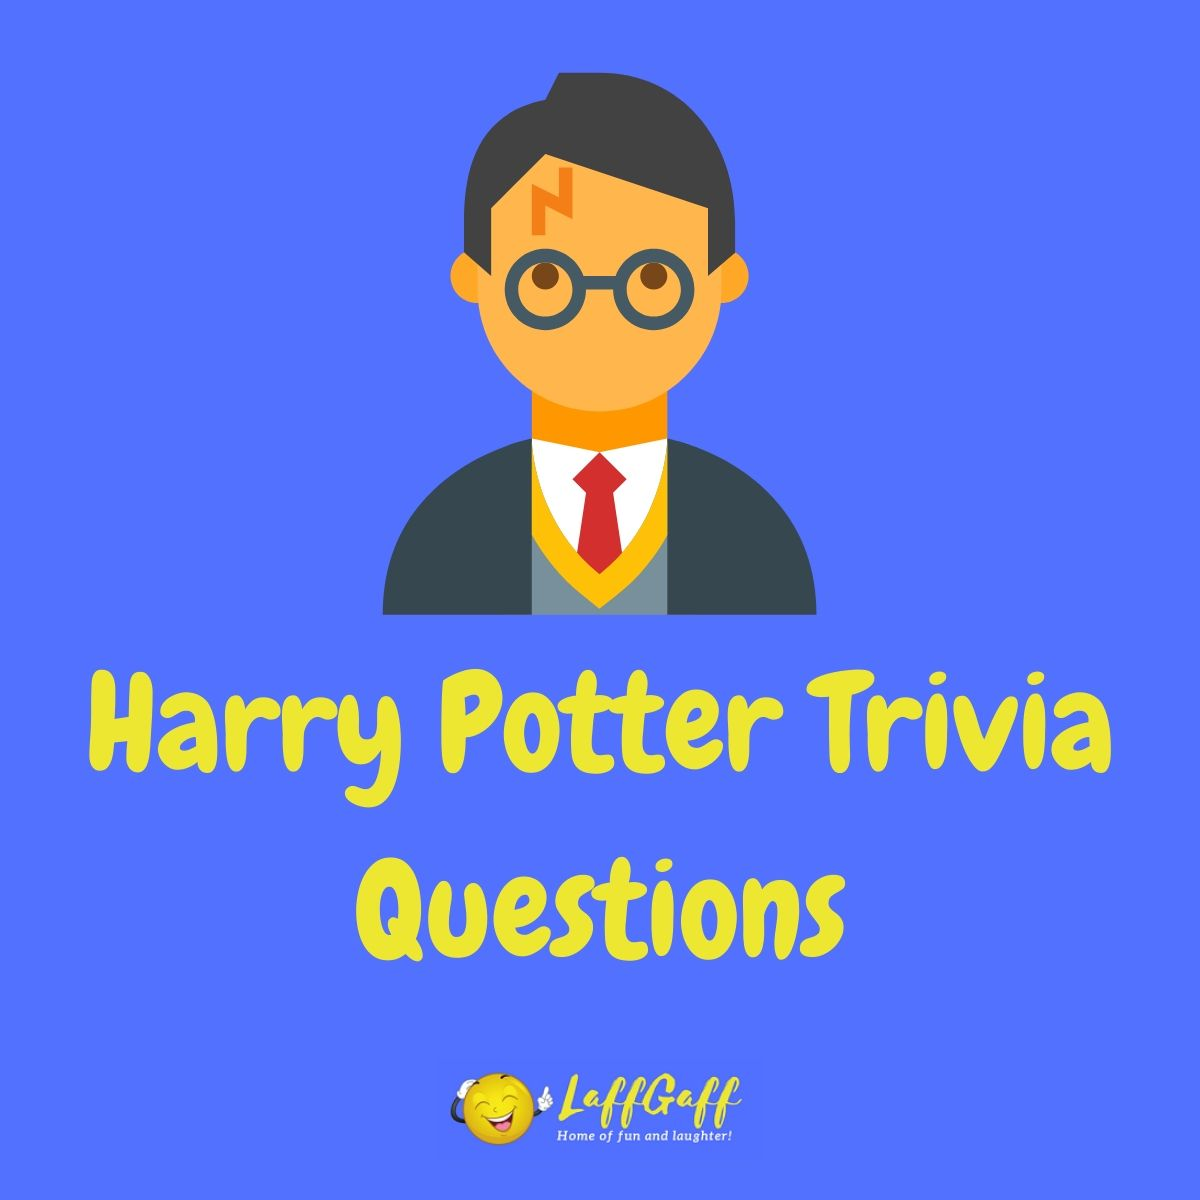 Featured image for a page of Harry Potter trivia questions and answers.